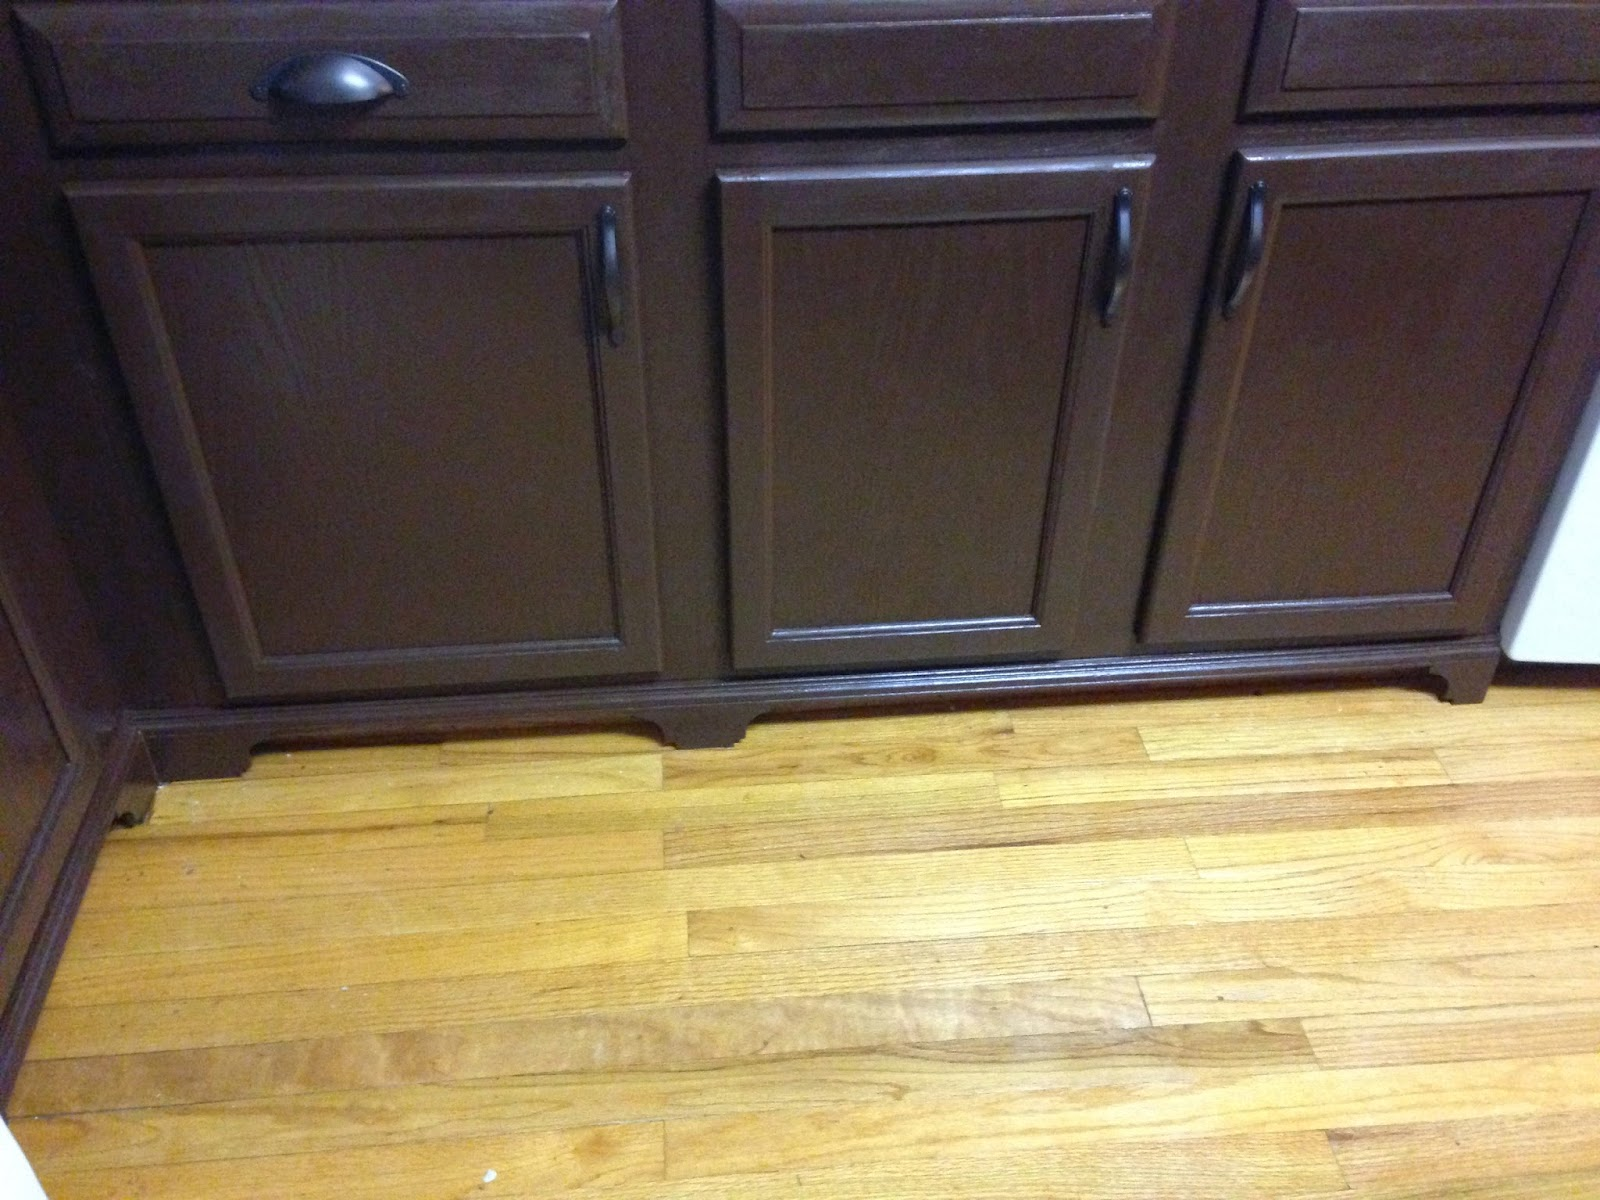 Kitchen Cabinets With Feet Budget Kitchen Renovation Adding Feet To Base Cabinets